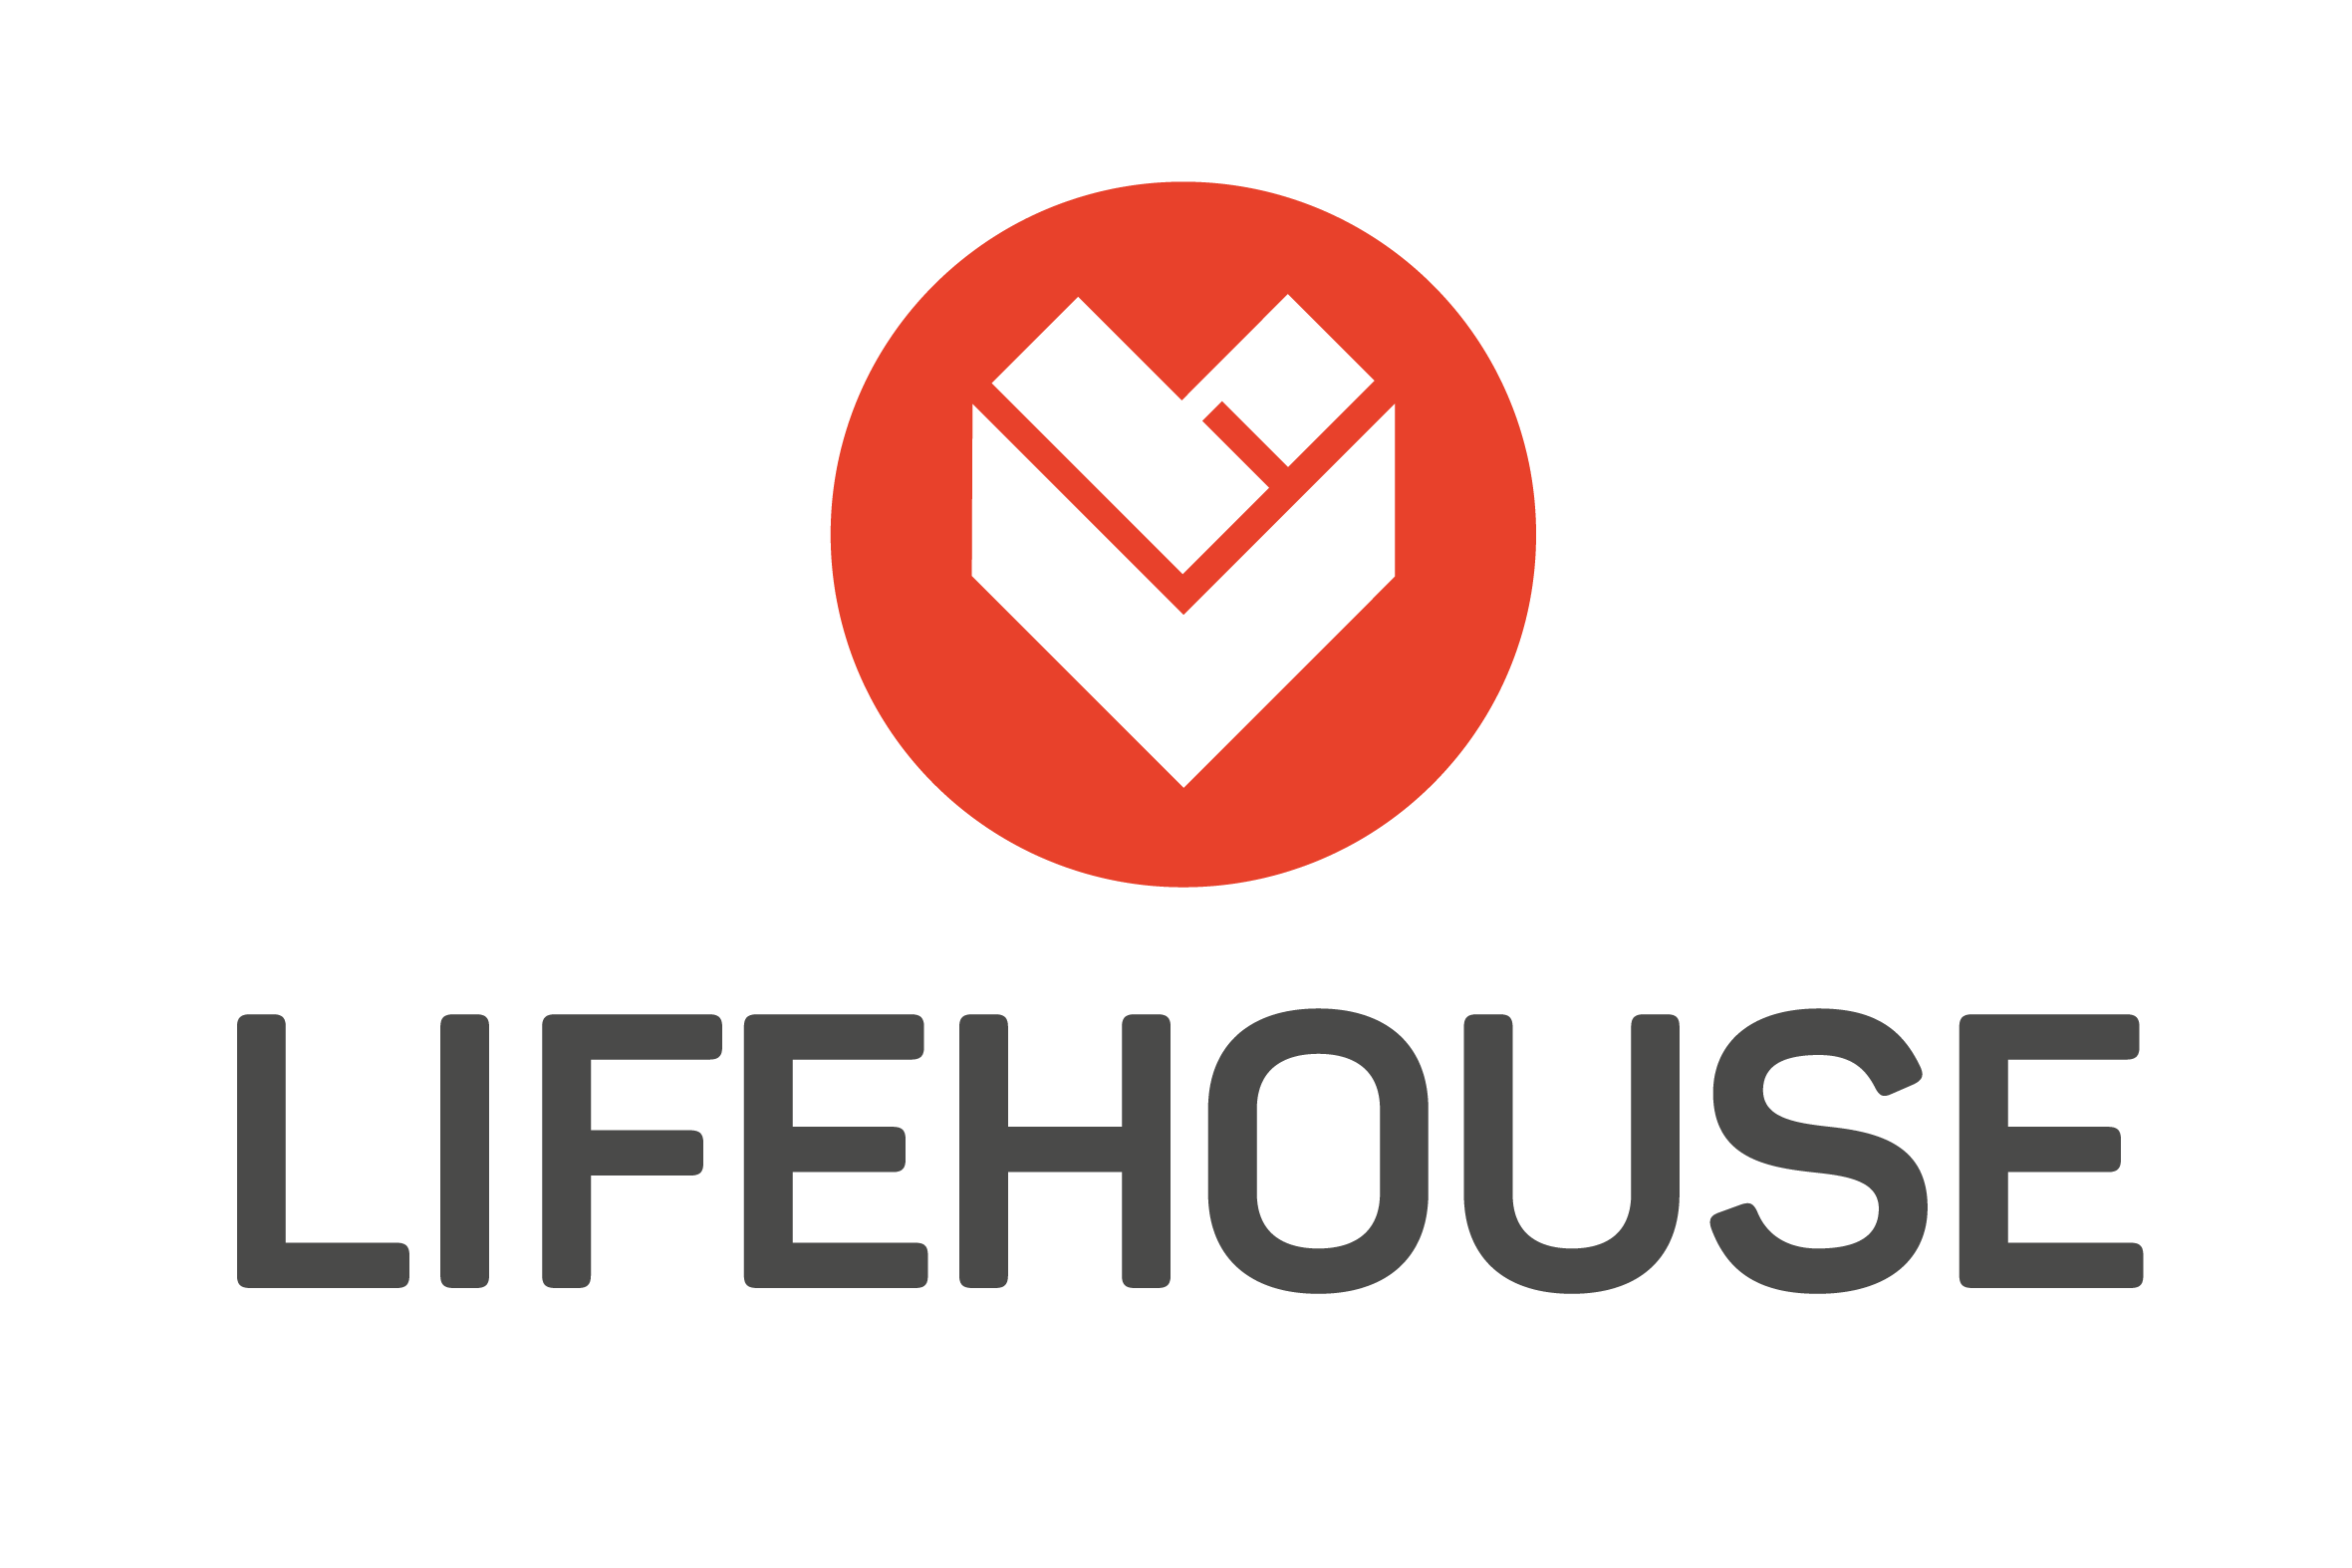 Lifehouse Nederland